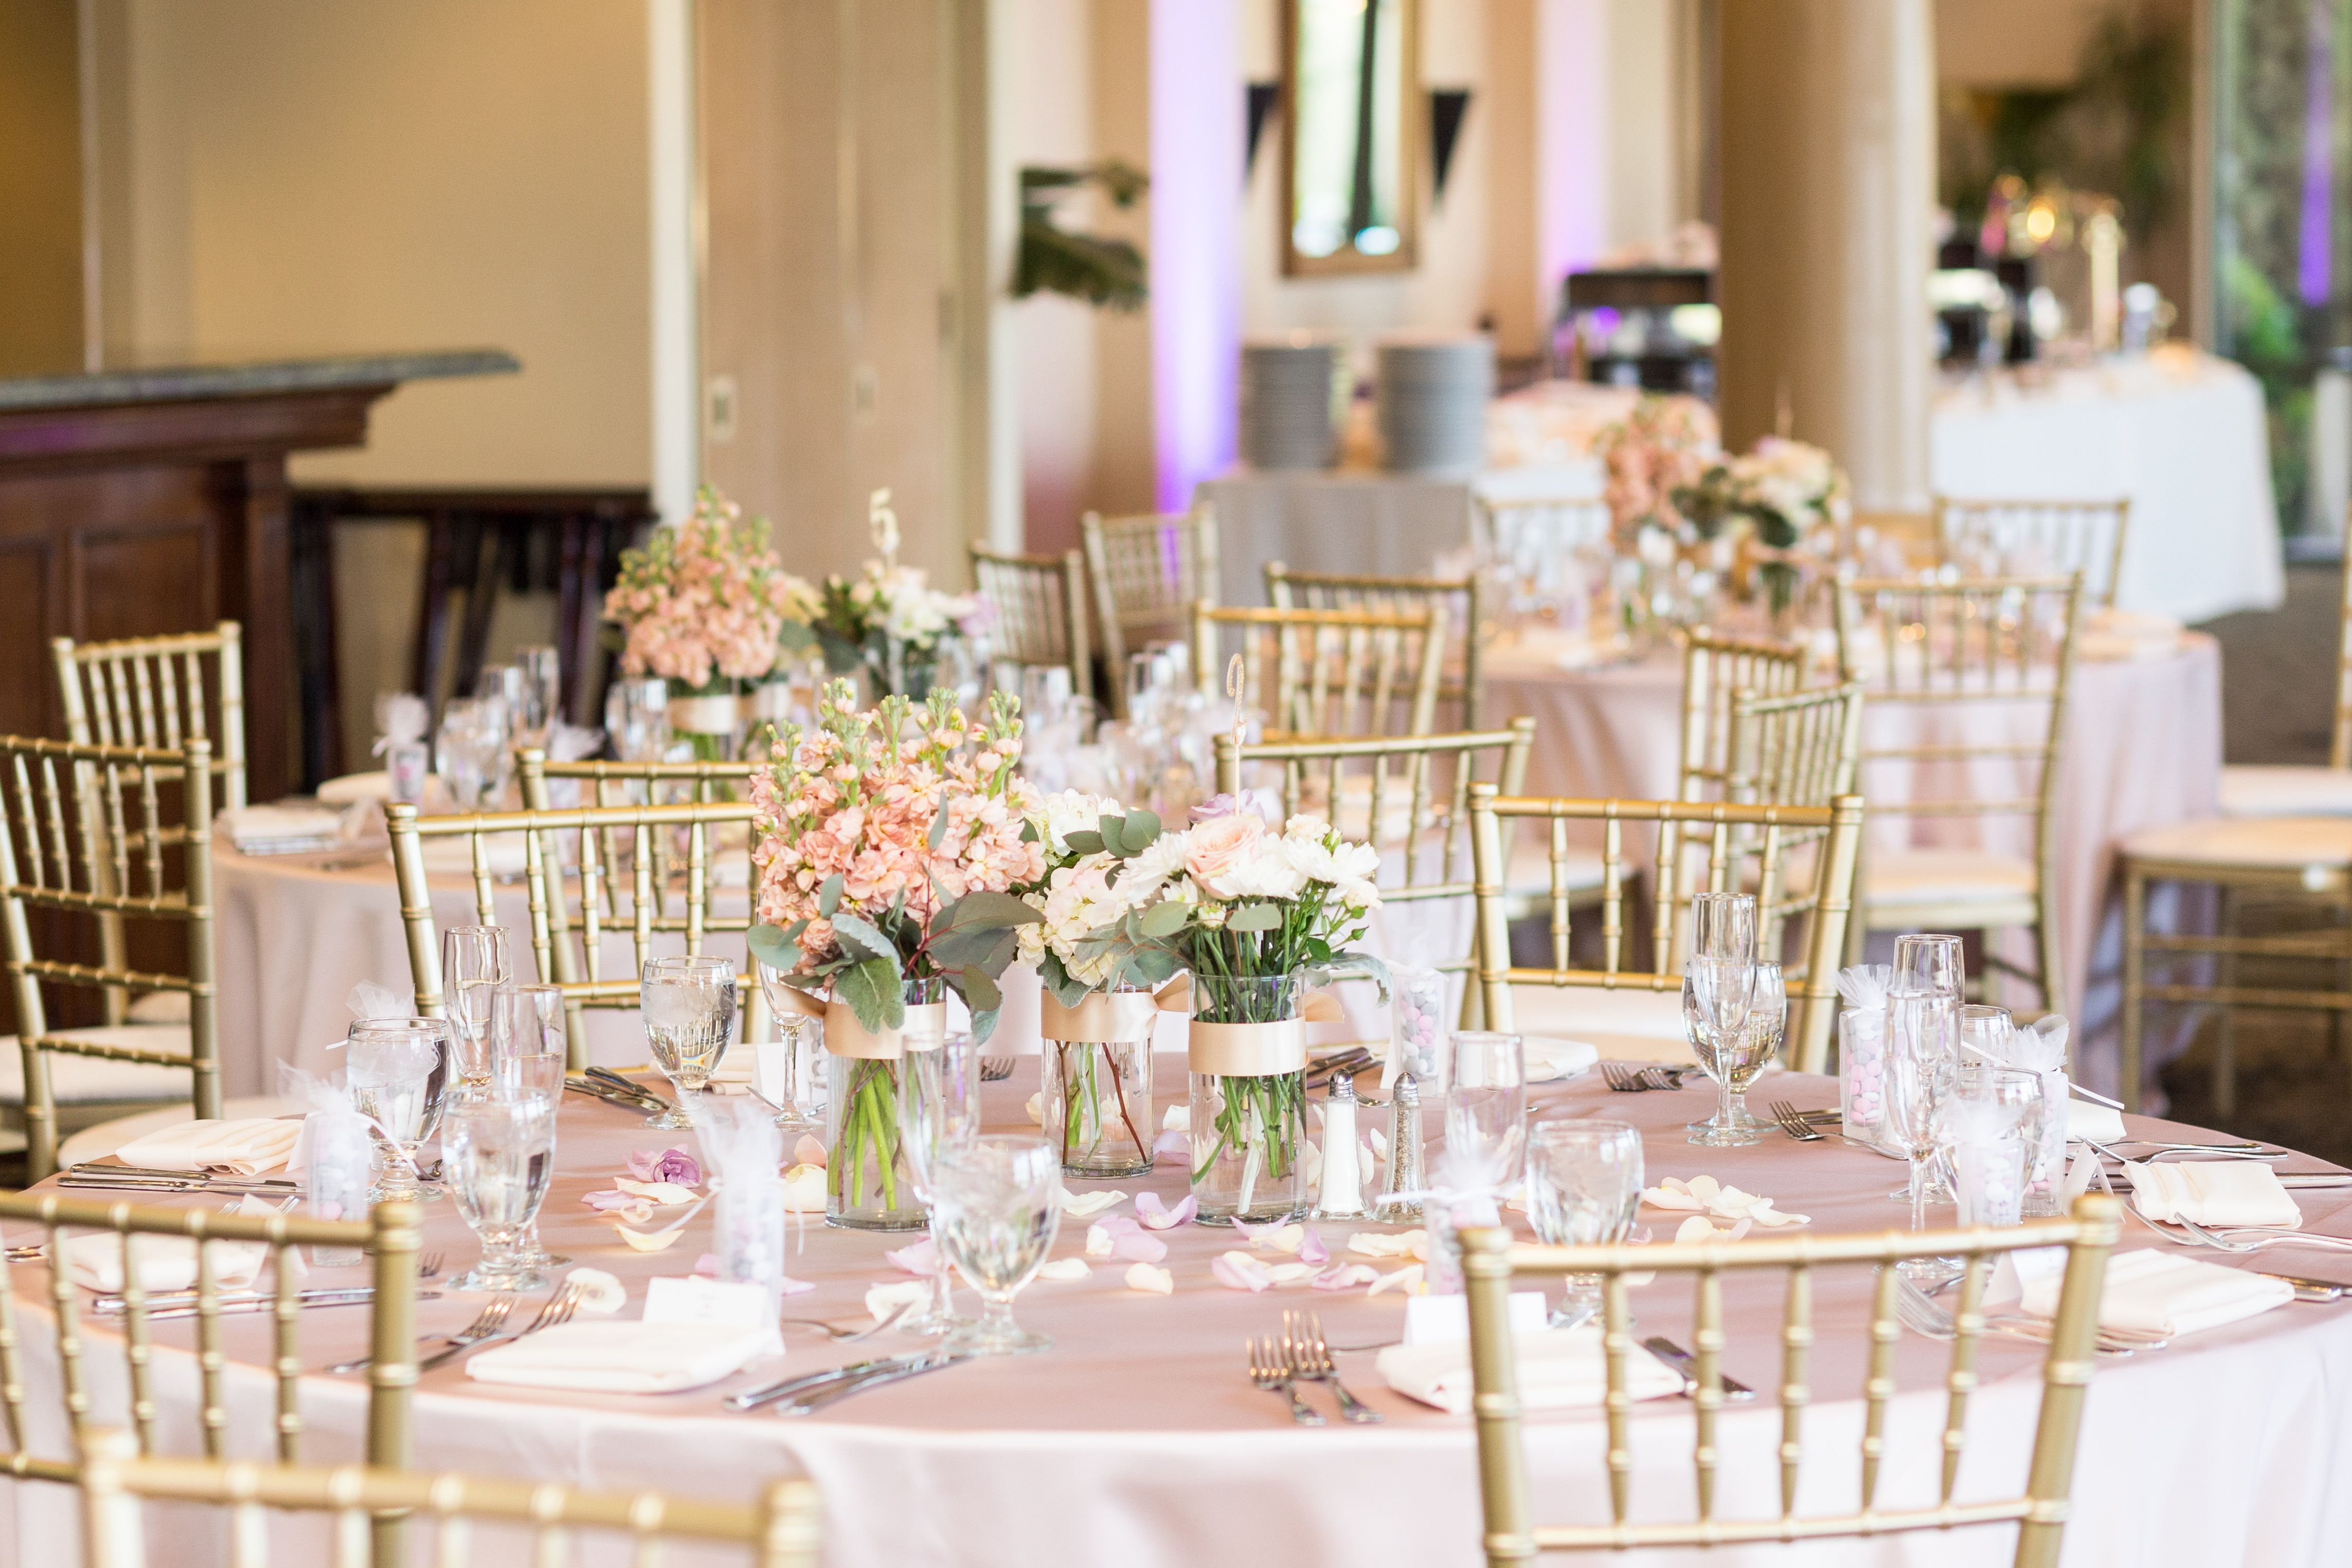 Blush Ivory And Gold Wedding Reception Flower Centerpieces And Gold Chiavari Chairs Gold Chiavari Chairs Wedding Gold Wedding Reception Gold Chiavari Chairs